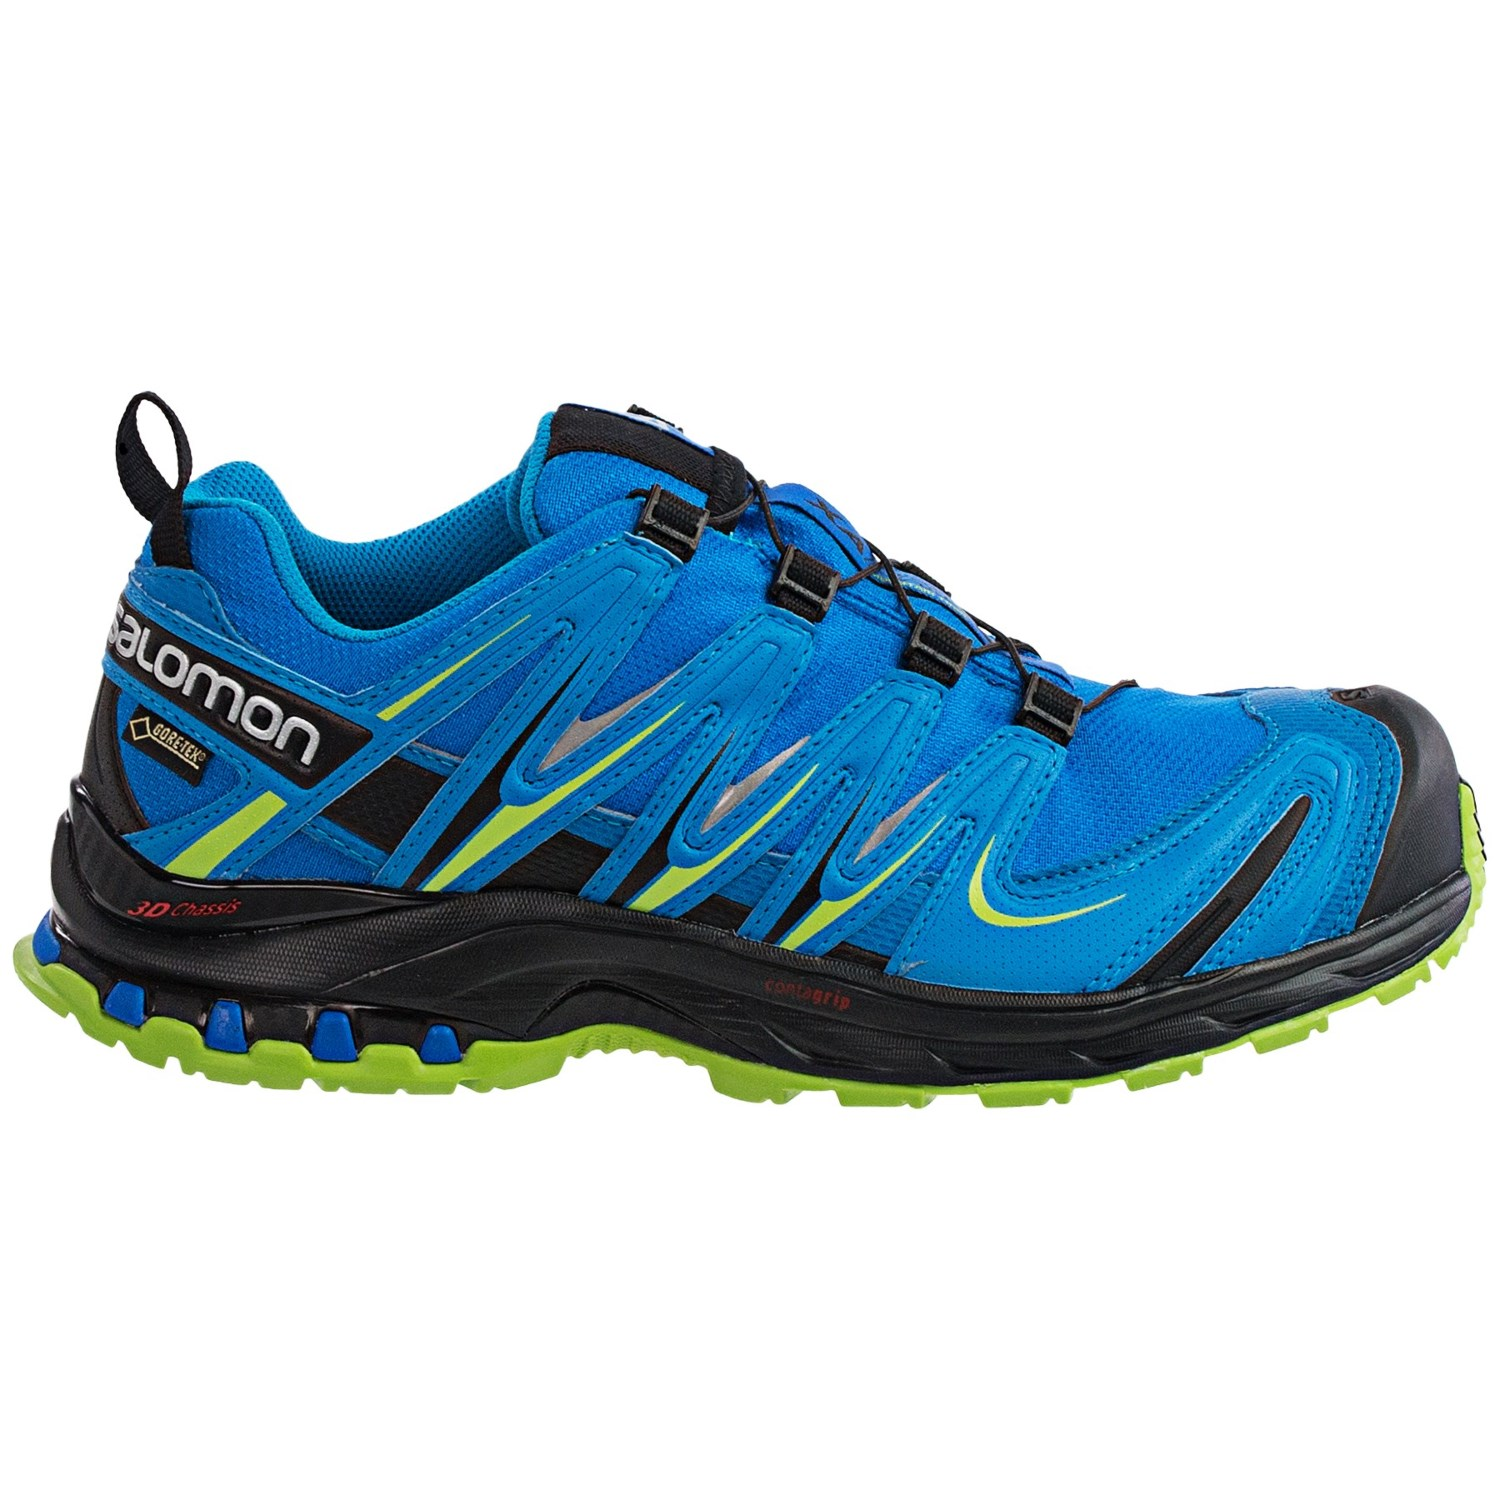 Gore Tex Running Shoes Reviews